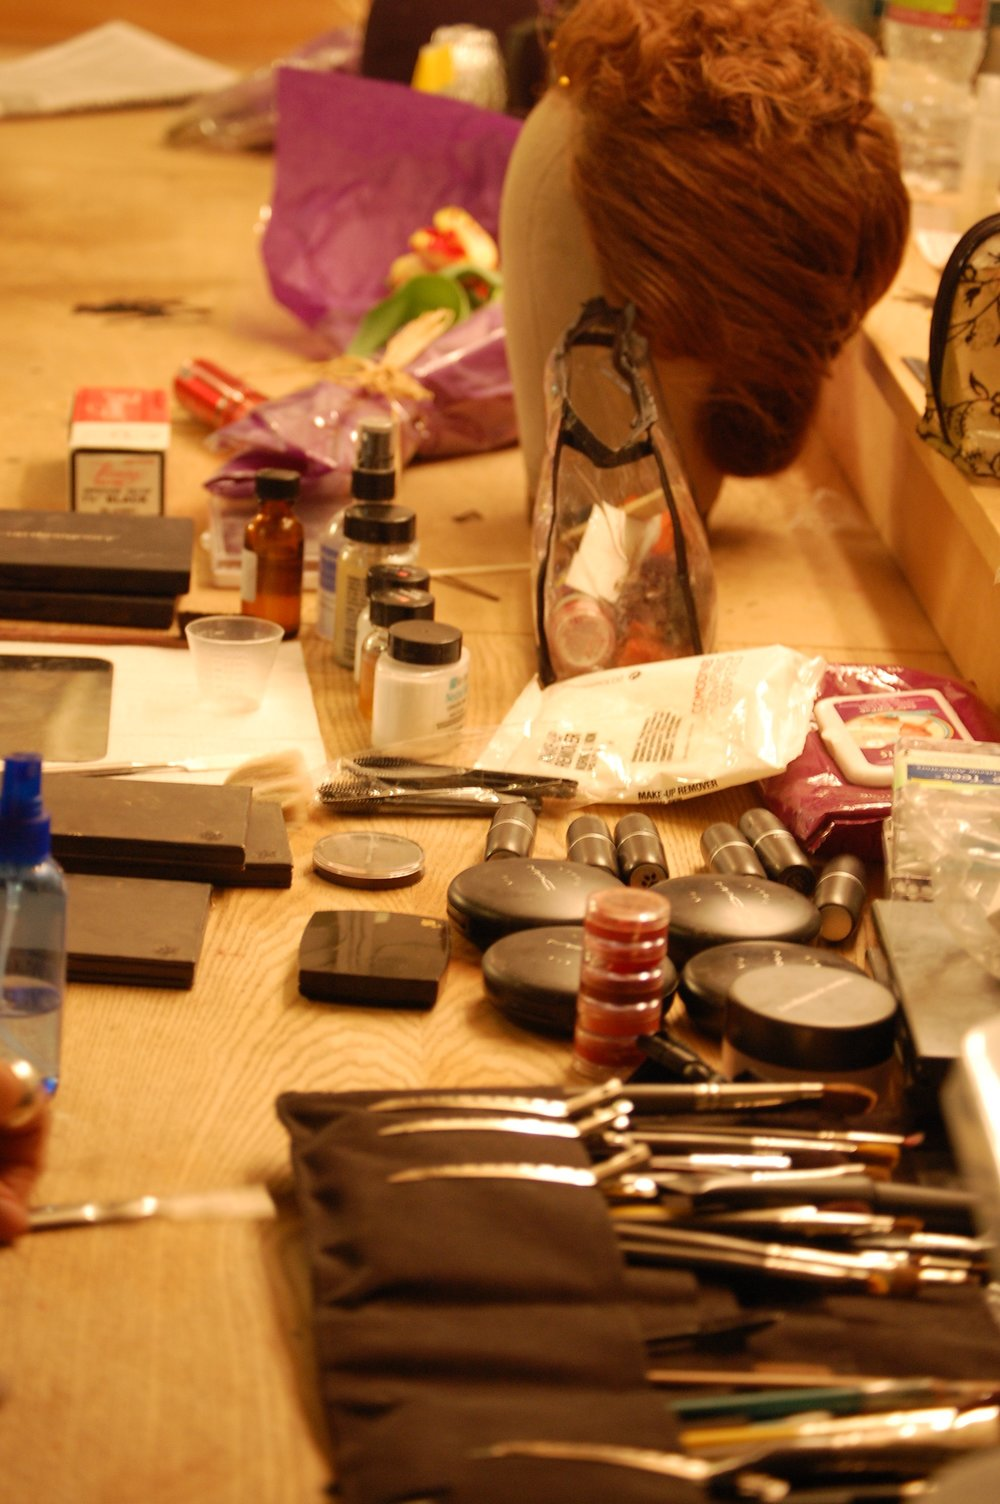 Make-up artist Boutheyna Boots' station backstage at Hollywood's El Centro Theatre during Lascaux Entertainment's 2011 production of  The Elephant Man , directed by John Drouillard.  Photo by Nirvana Kowlessar.